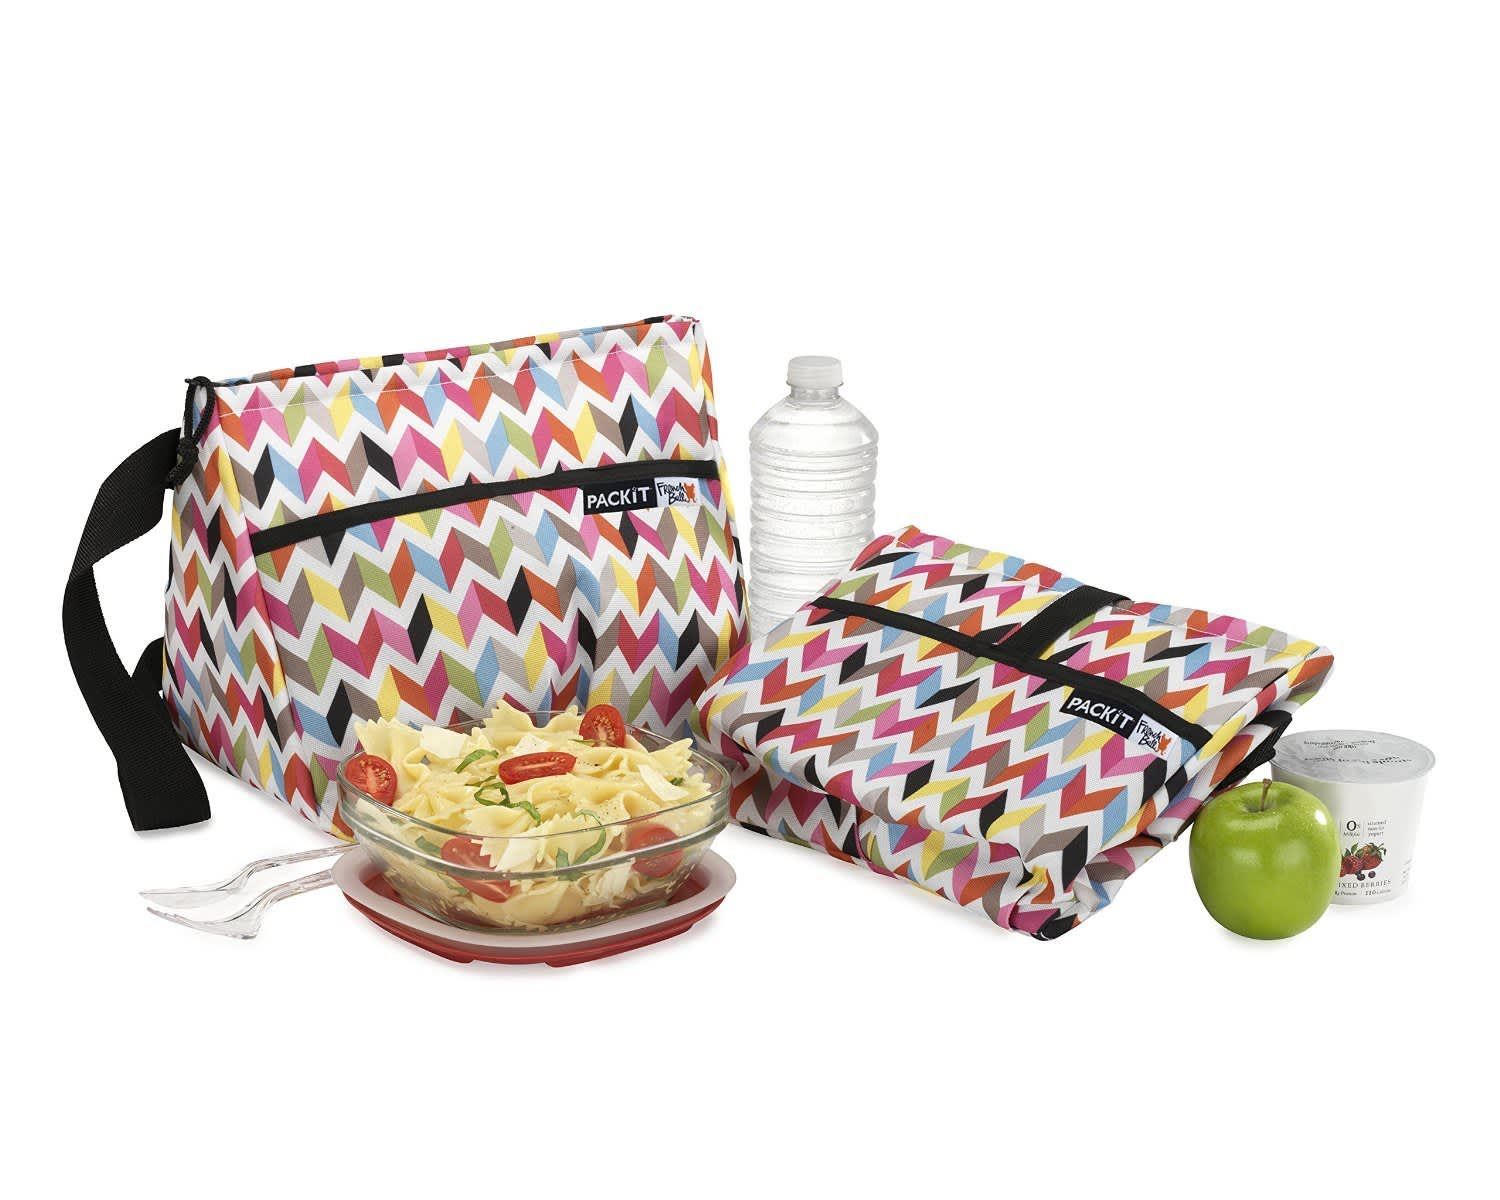 8 Favorite Lunch Bags to Brown-Bag It in Style: gallery image 3